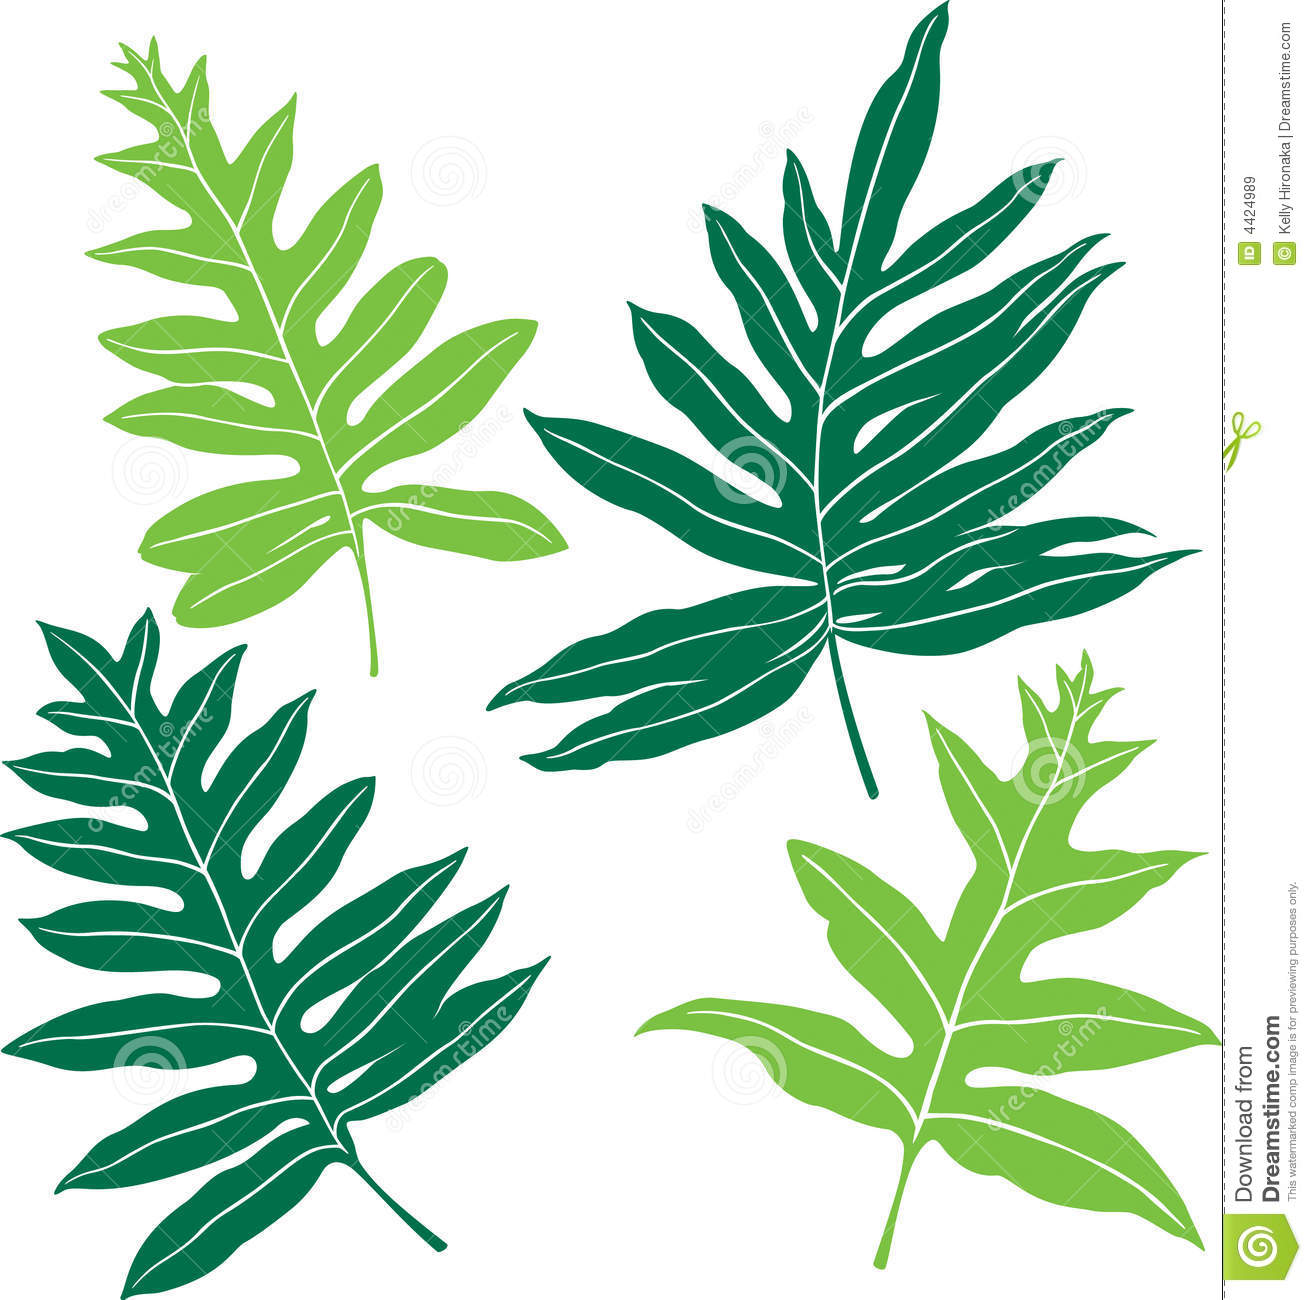 Illustration of 4 different fronds of the hawaiian lauae fern